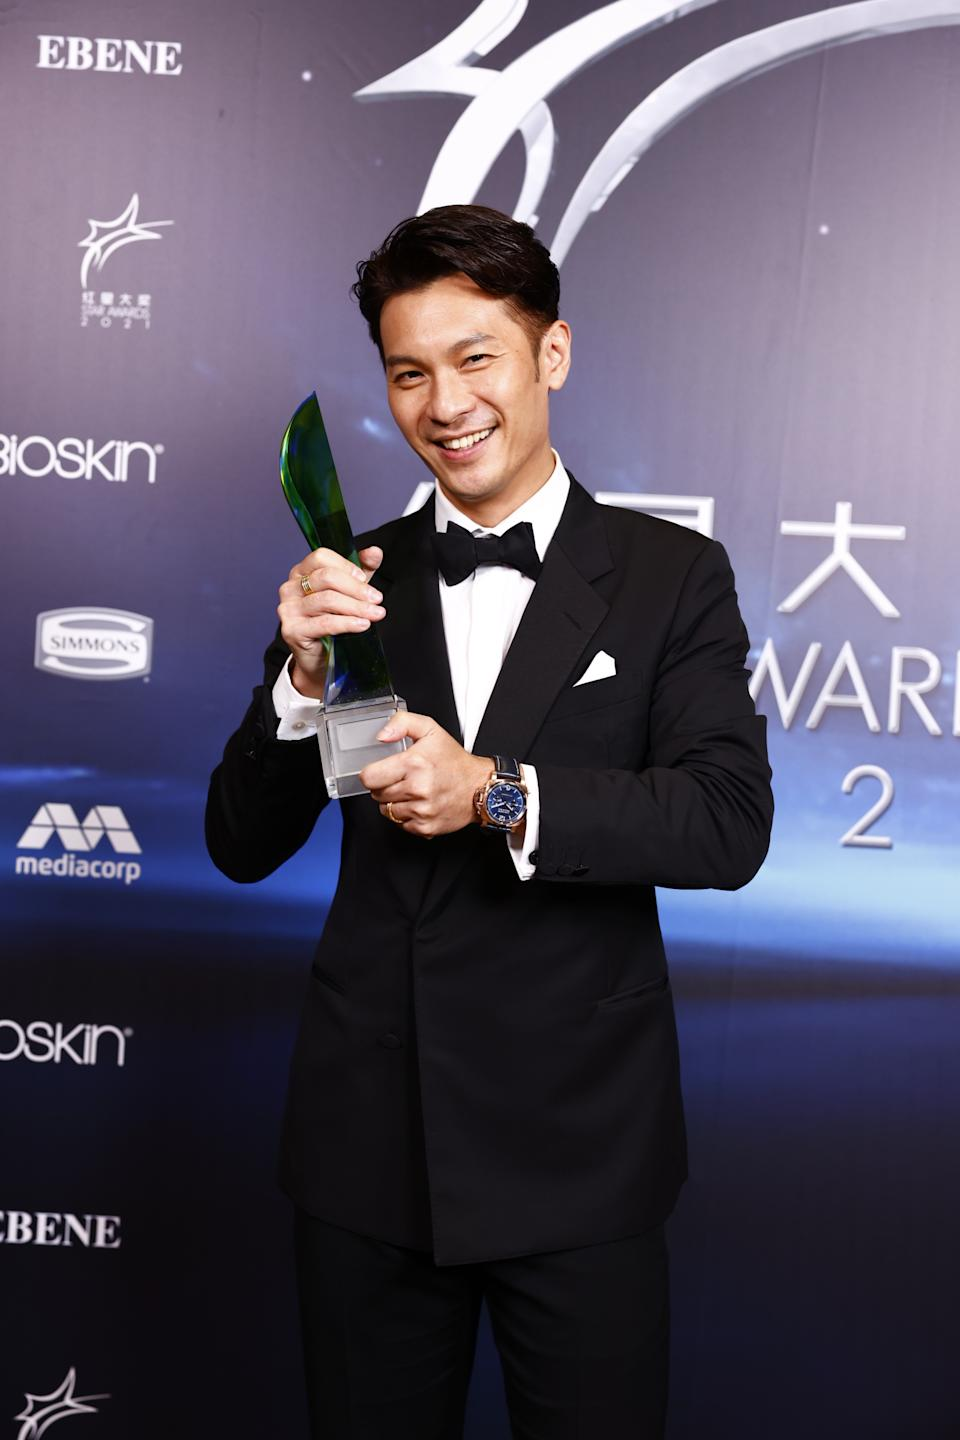 Shaun Chen at Star Awards held at Changi Airport on 18 April 2021. (Photo: Mediacorp)